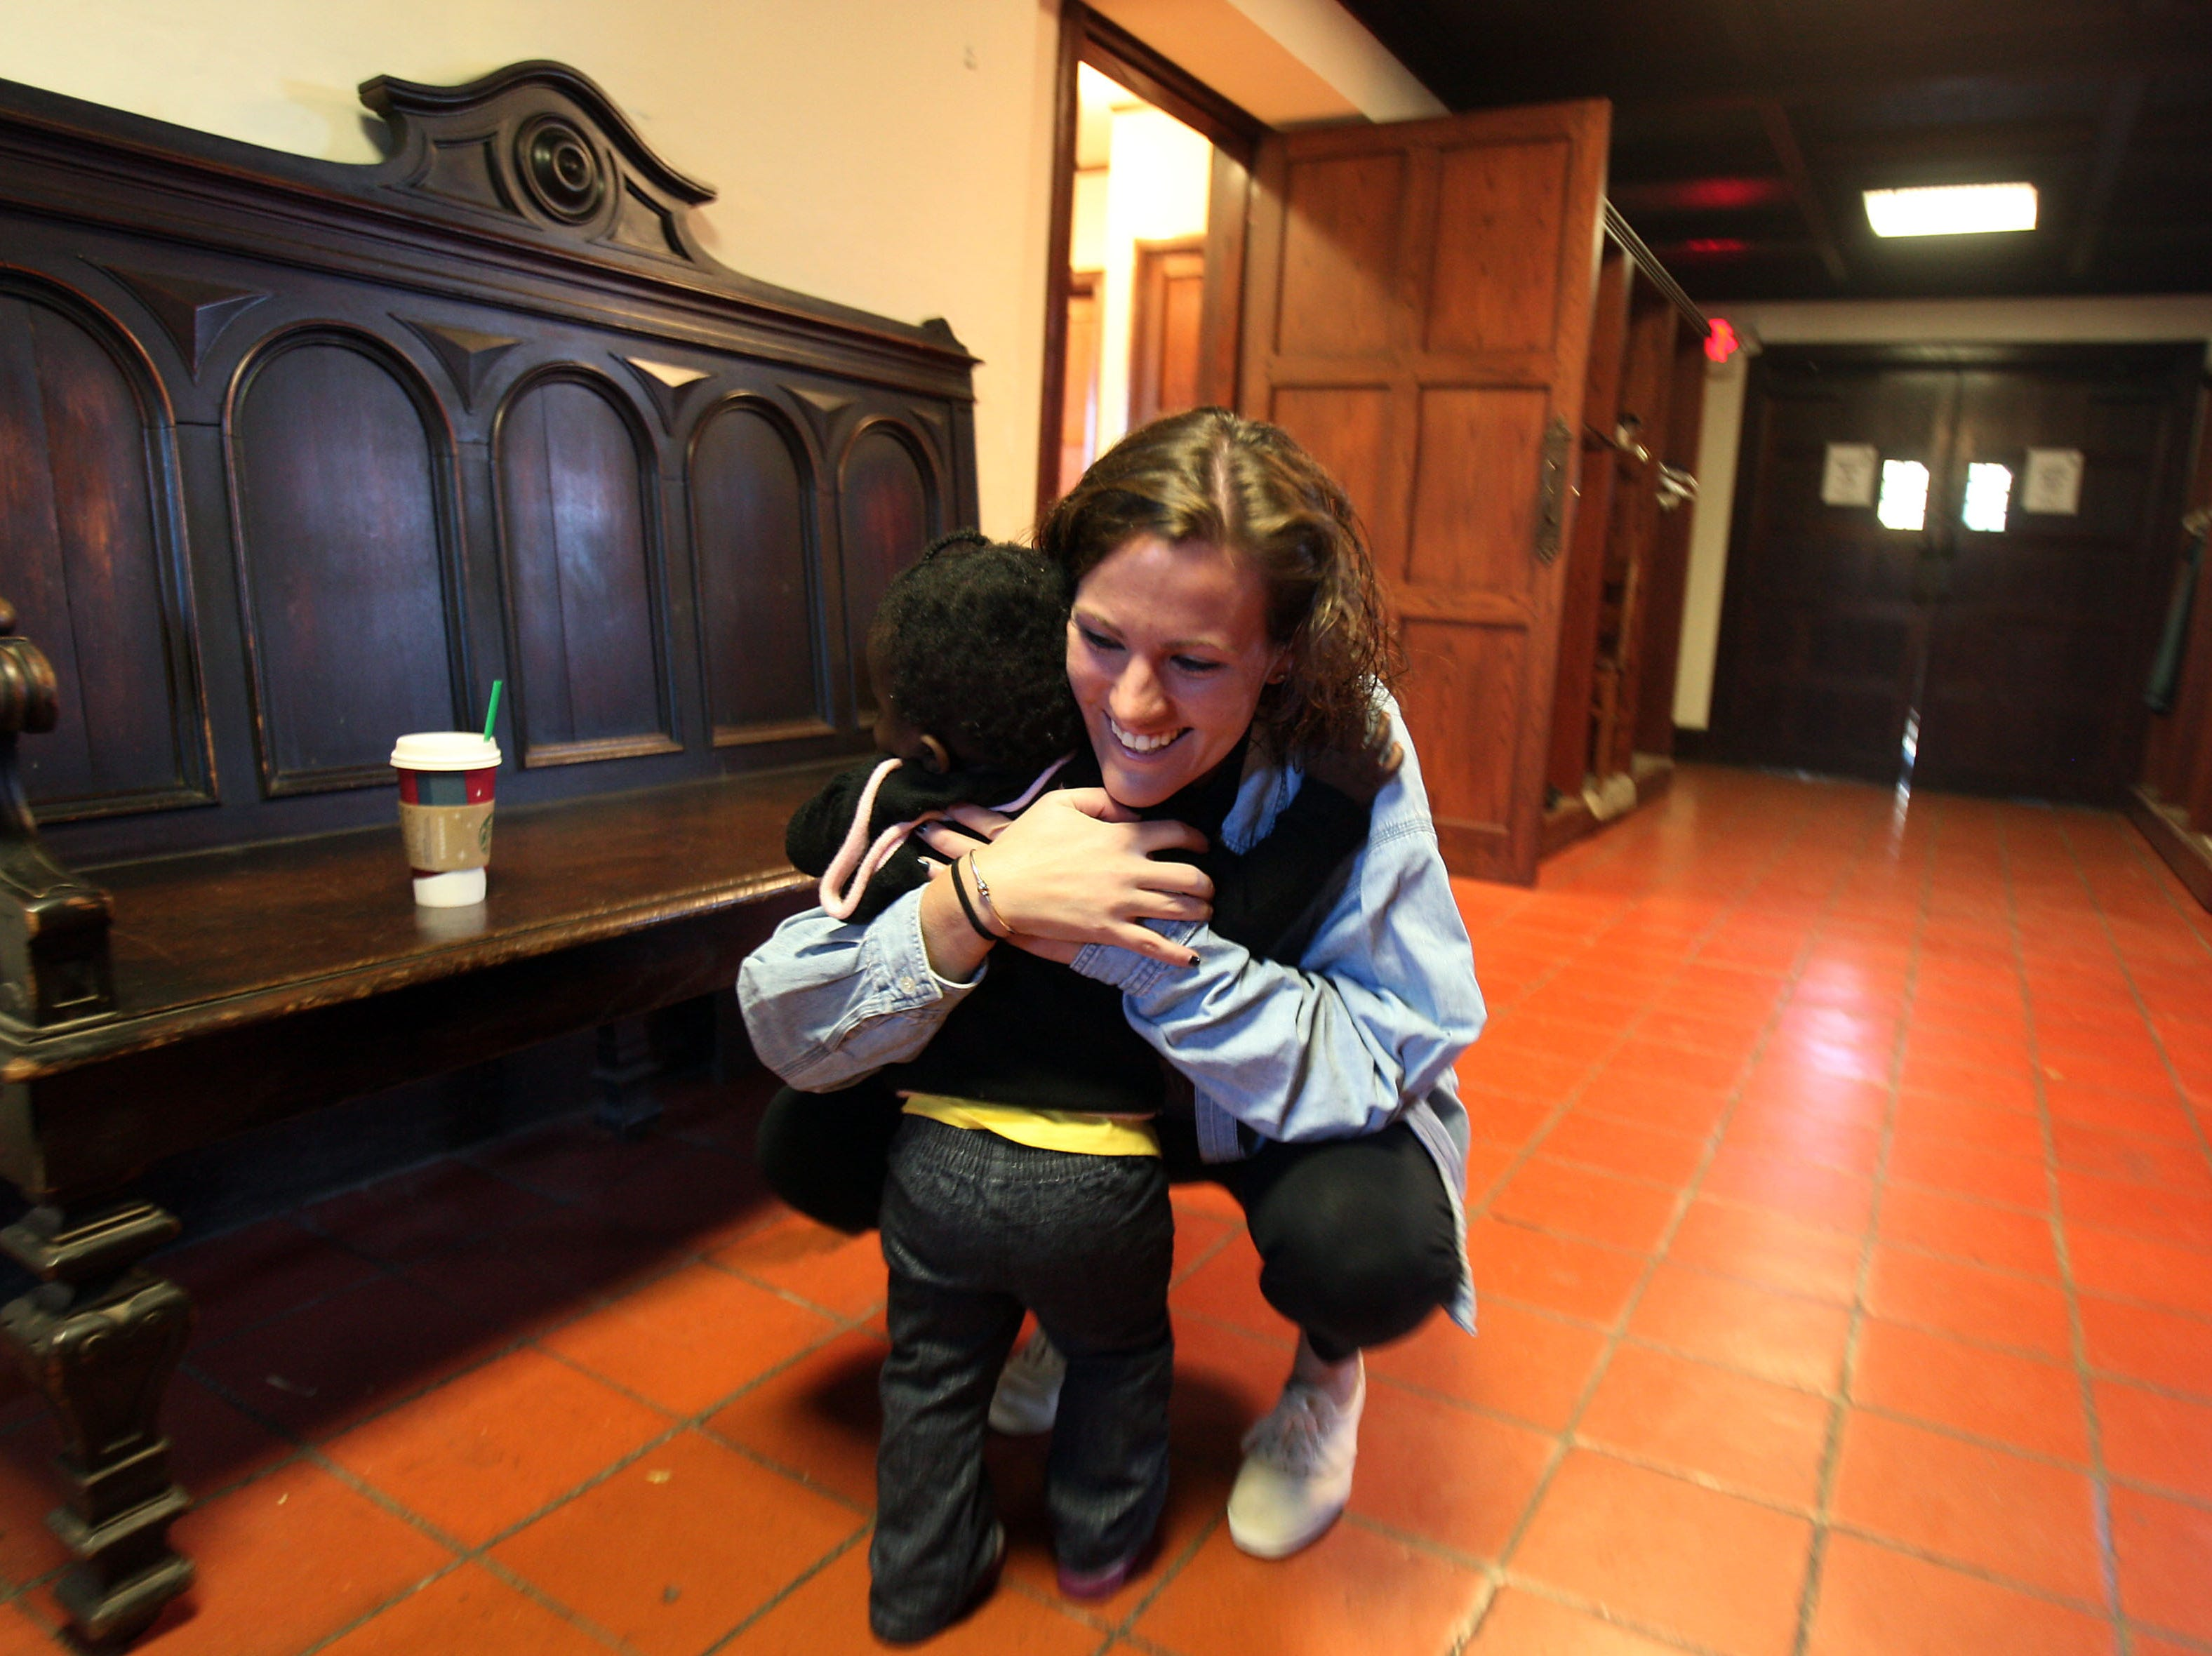 Morristown, N.J.- November 4, 2012--15-month-old Za'Inah Tolliver of Morristown, NJ gets a comforting hug from volunteer Caitlin Lynch of Randolph during breakfast offered by St Peter's Episcopal Church in Morristown, NJ as locals continue the recovery process in the aftermath of Hurricane Sandy.